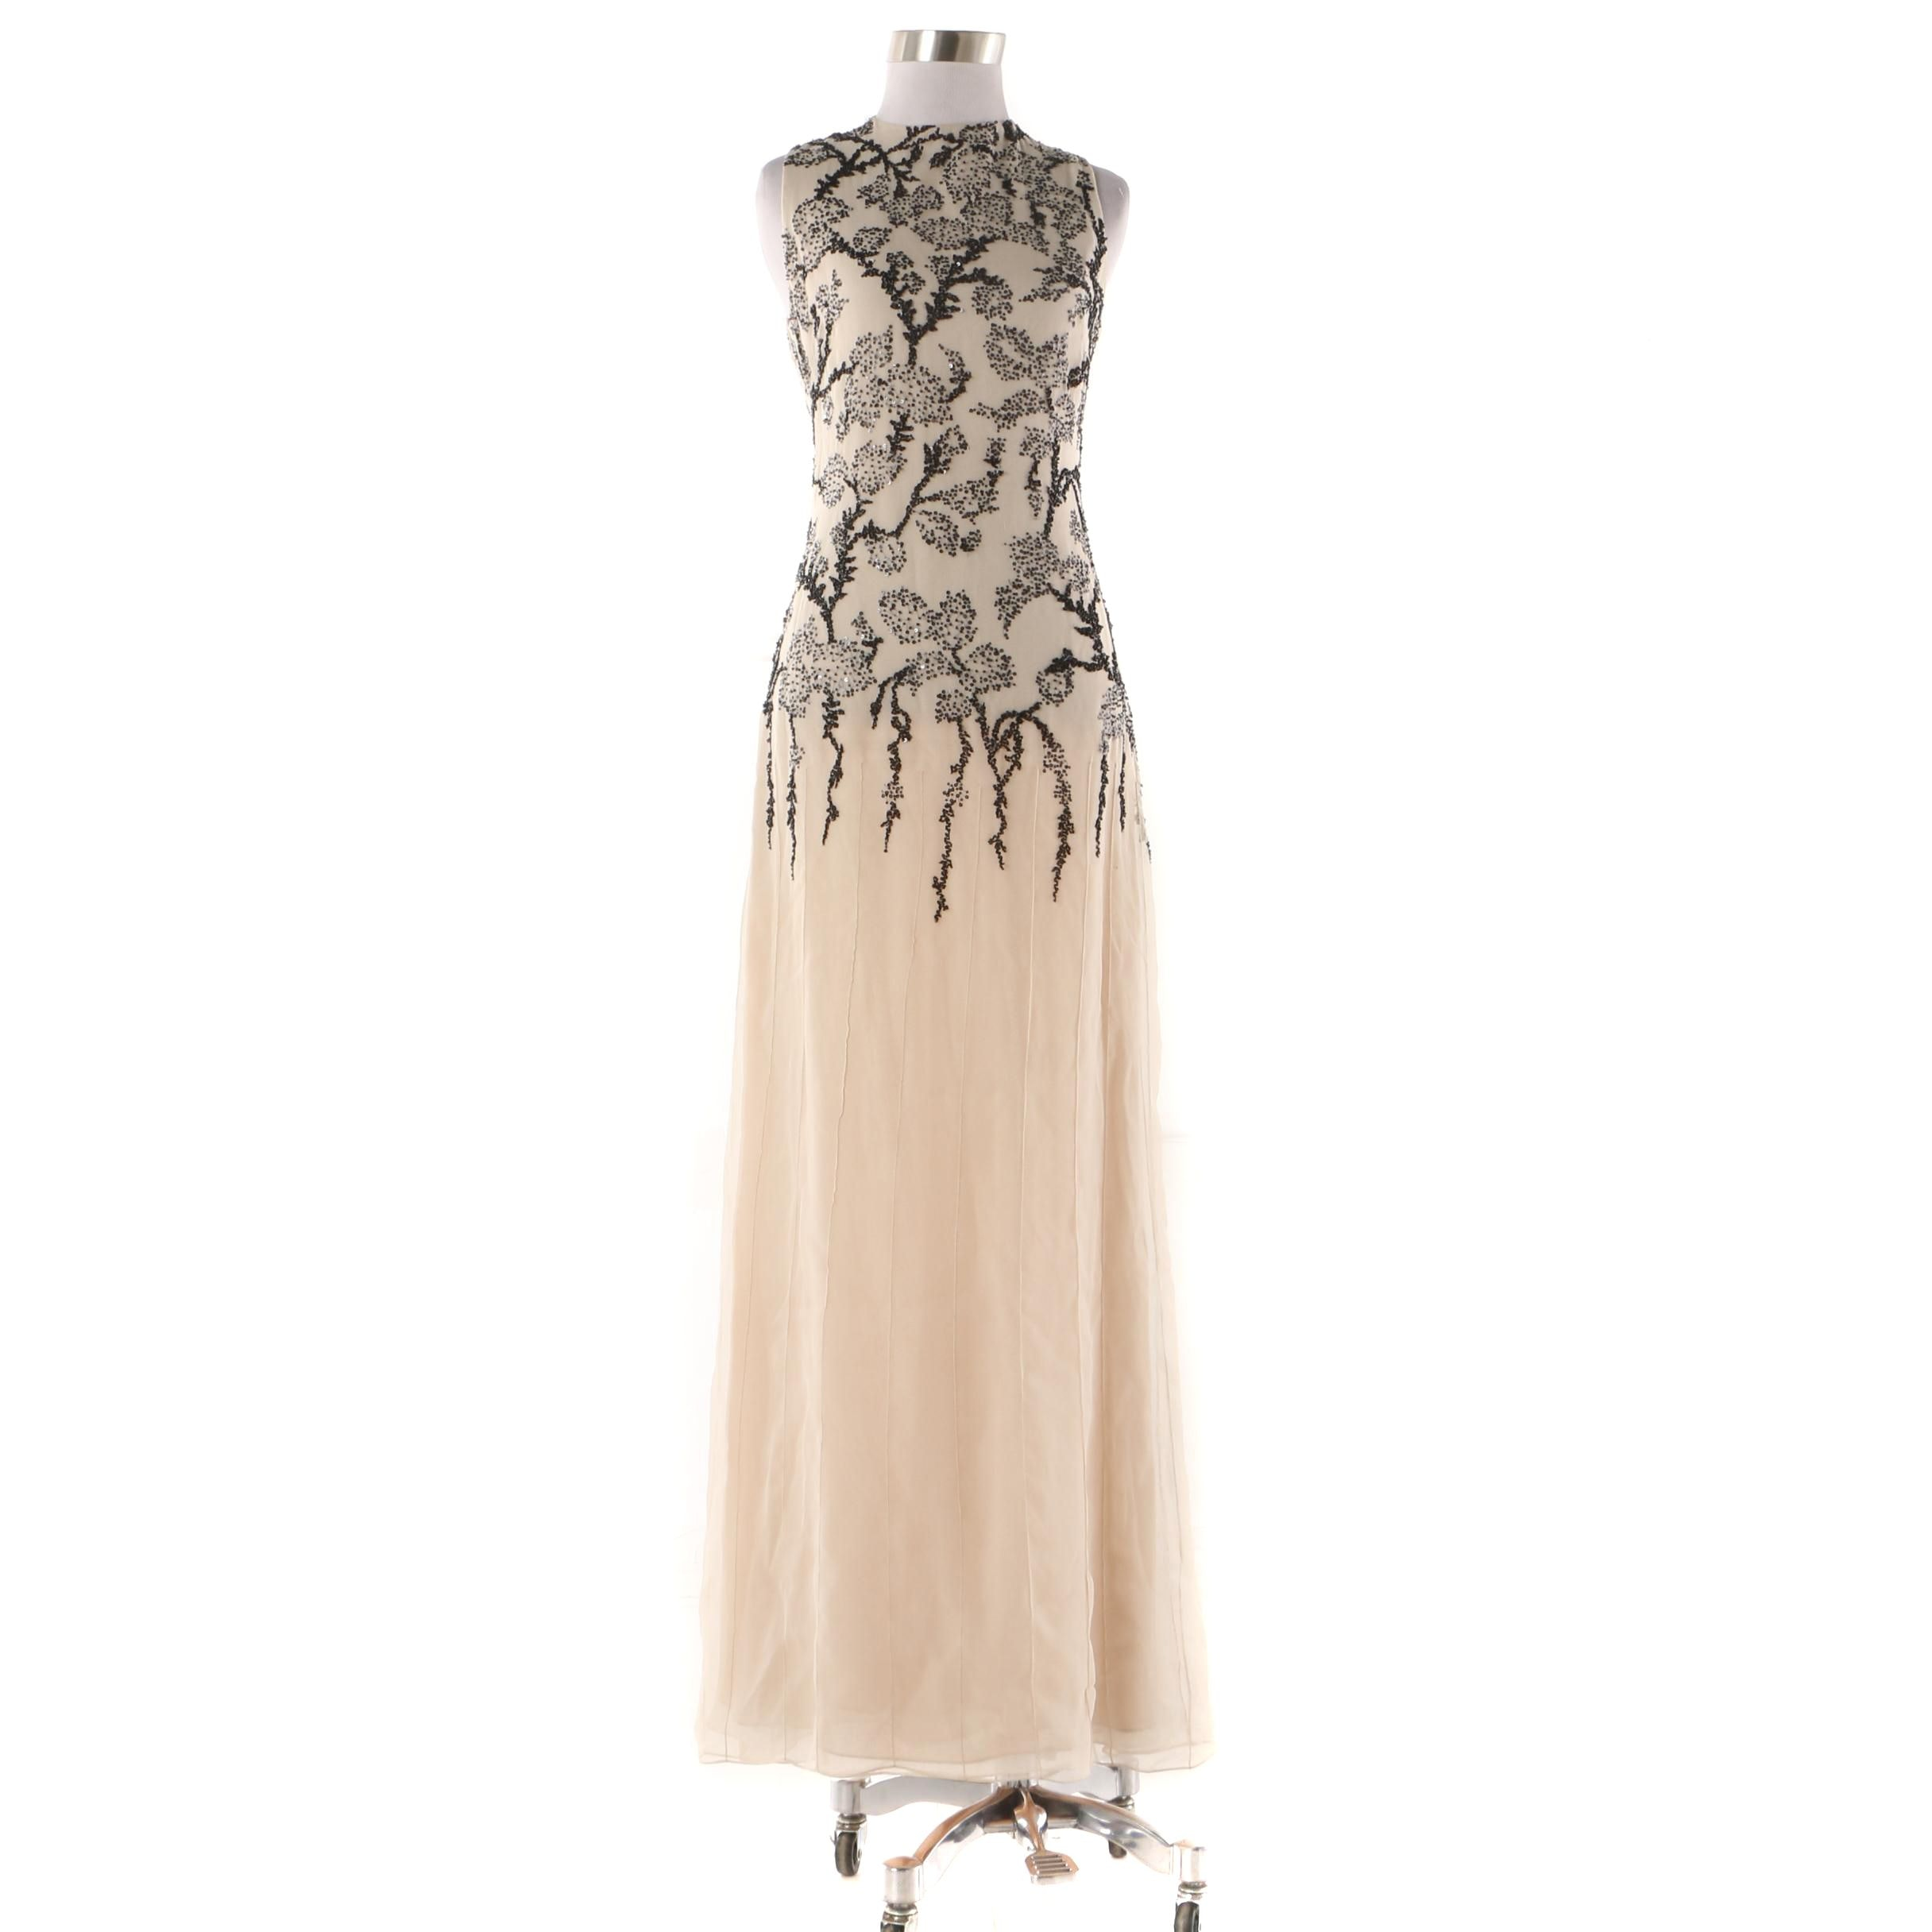 Vera Wang Champagne Silk Sleeveless Evening Dress with Black Foliate Beading